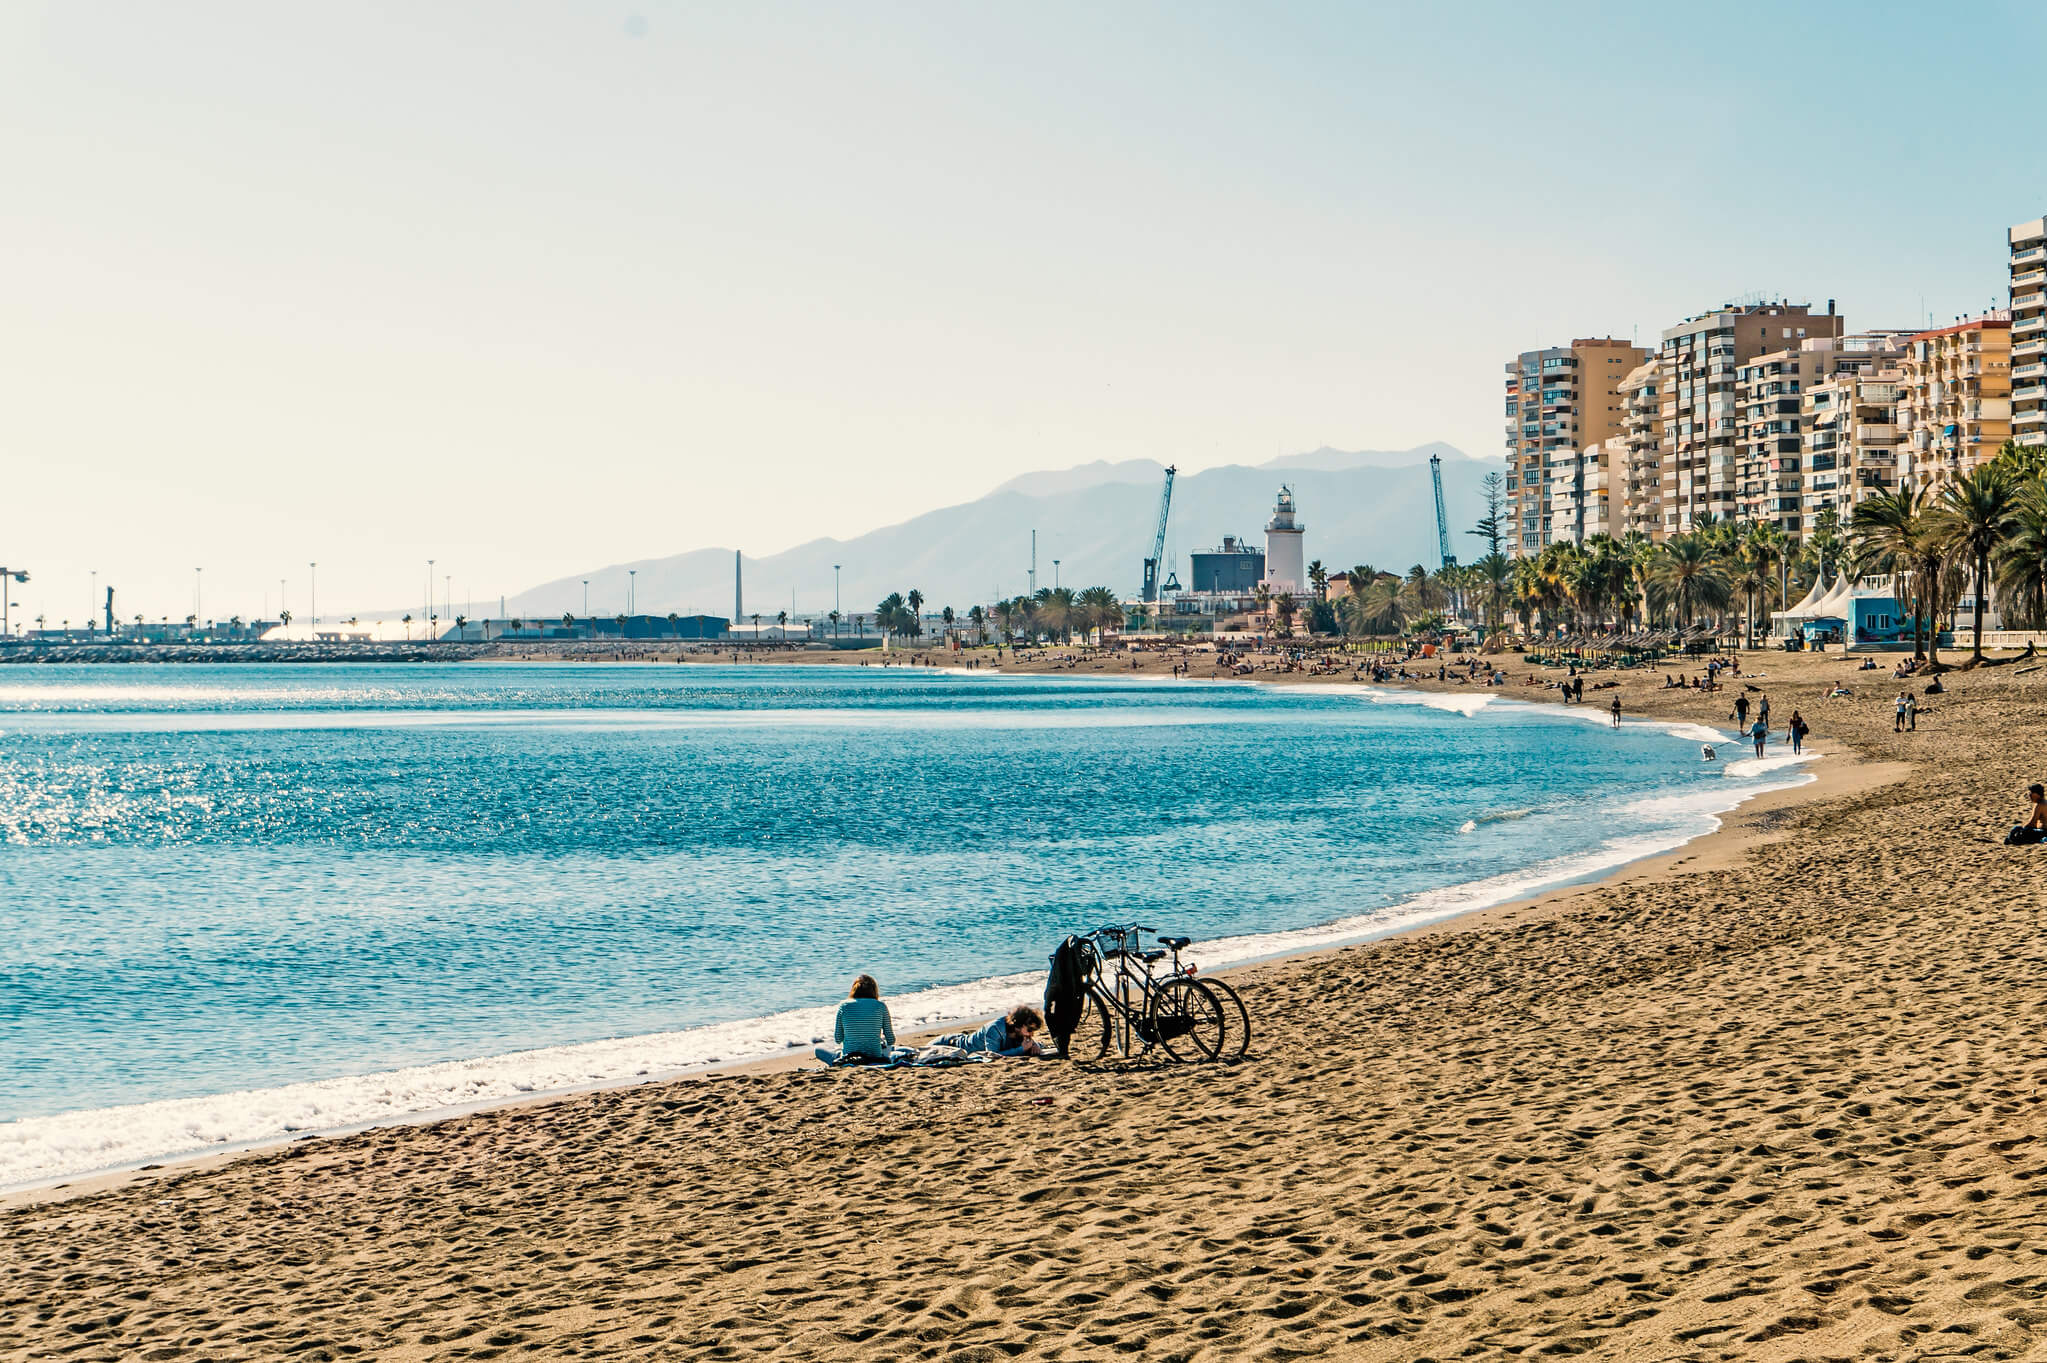 La Malagueta Beach, in Malaga, Spain, a couple chilling at the sand